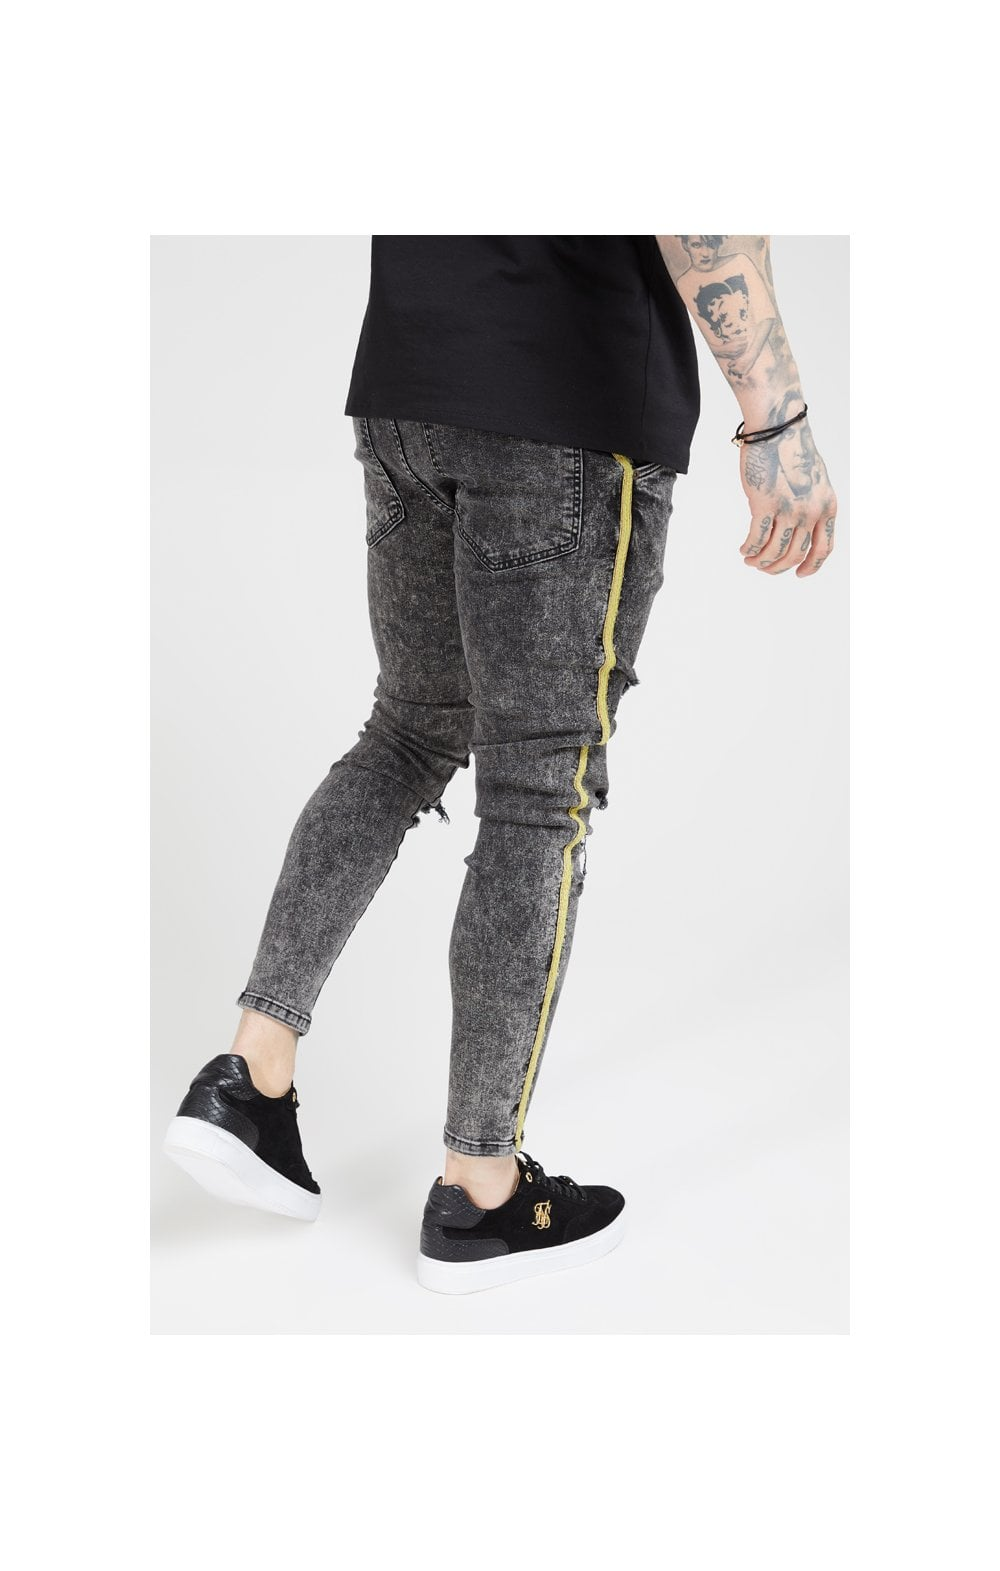 Load image into Gallery viewer, SikSilk Distressed Skinny Taped Denims - Faded Grey (2)